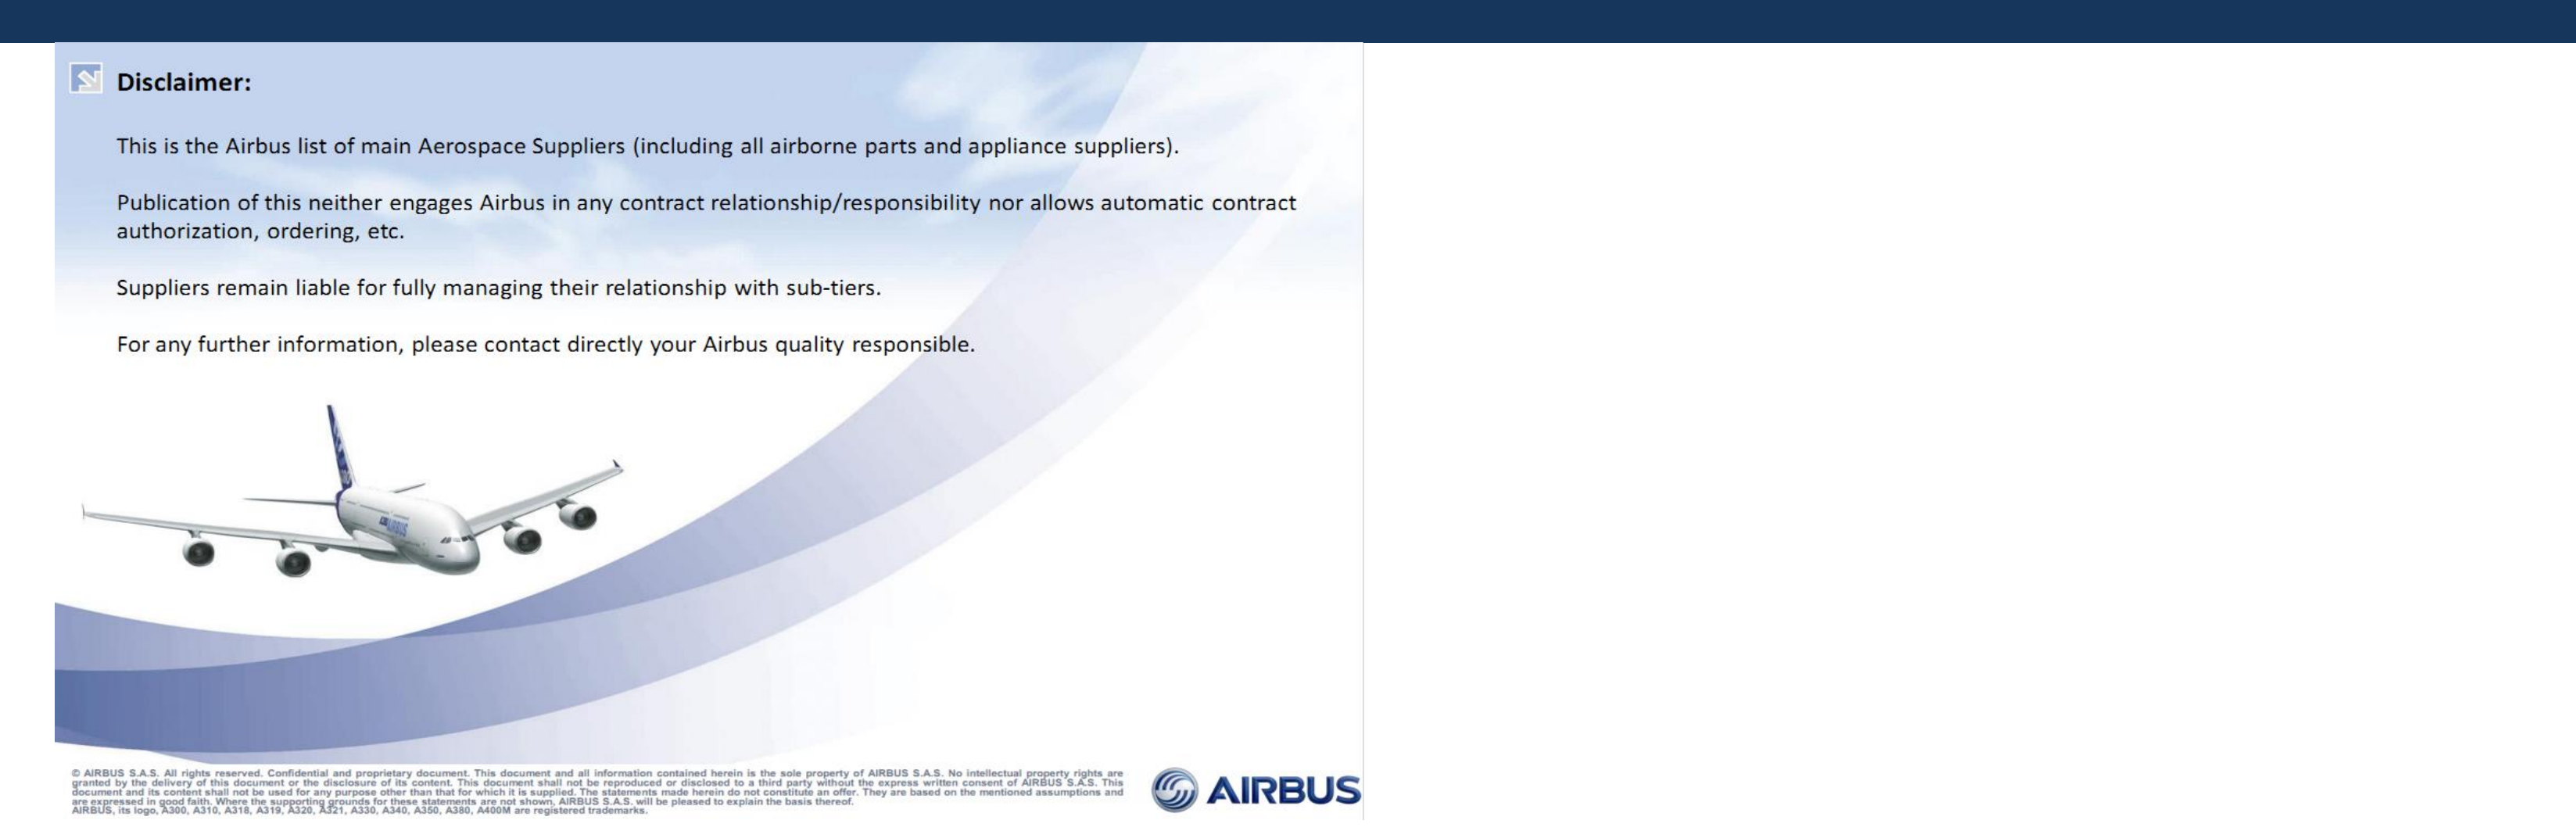 Quai Des Marques Jard Sur Mer airbus approved suppliers list june - approval list june